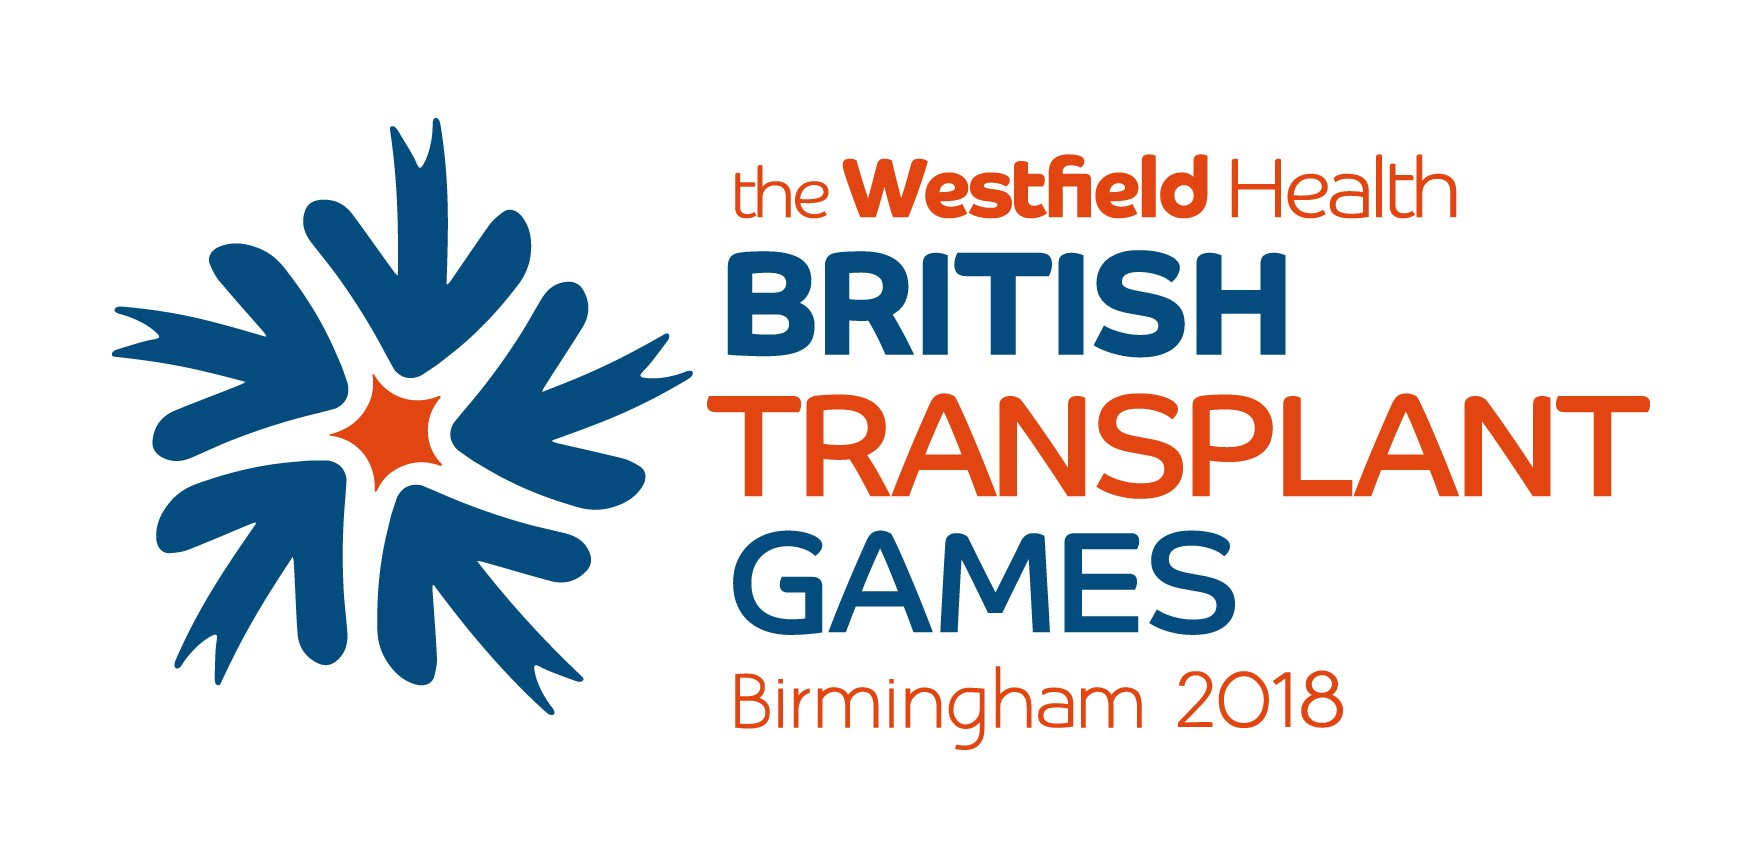 The Westfield Health British Transplant Games 2018 logo